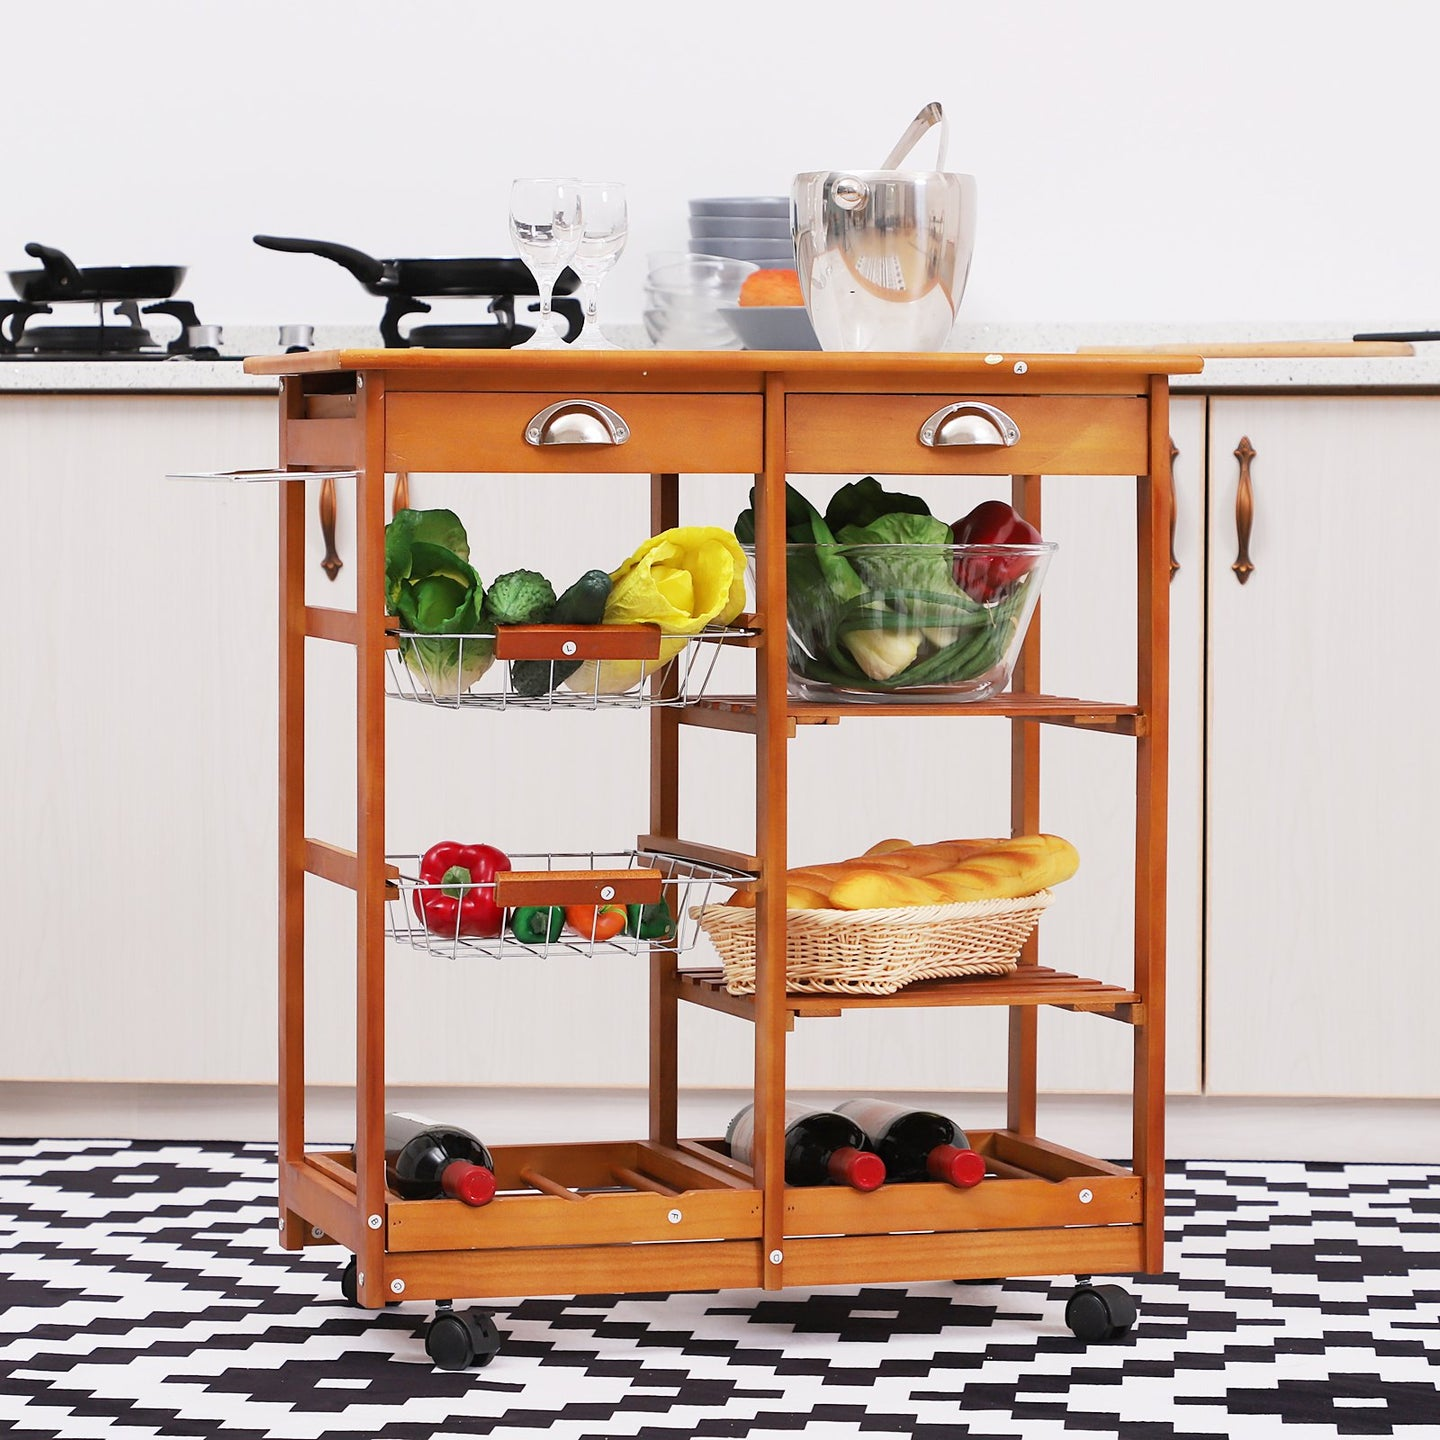 Homcom Wooden Kitchen Trolley Cart Drawers, 3 Shelves